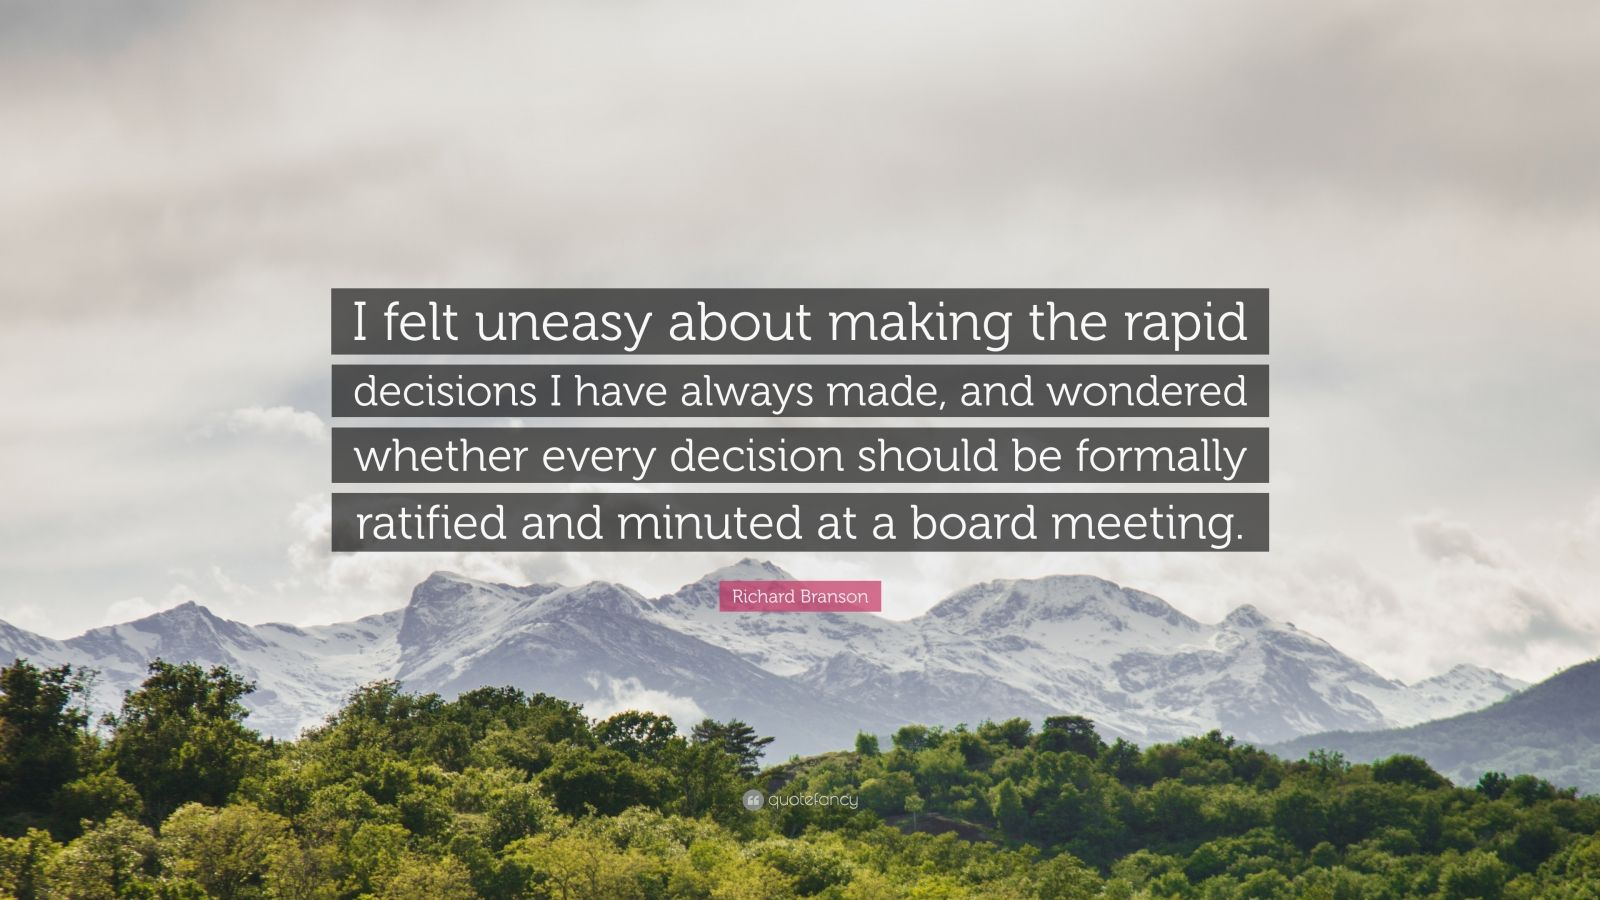 """Richard Branson Quote: """"I felt uneasy about making the rapid decisions I have always made, and wondered whether every decision should be formally ratified and minuted at a board meeting."""""""